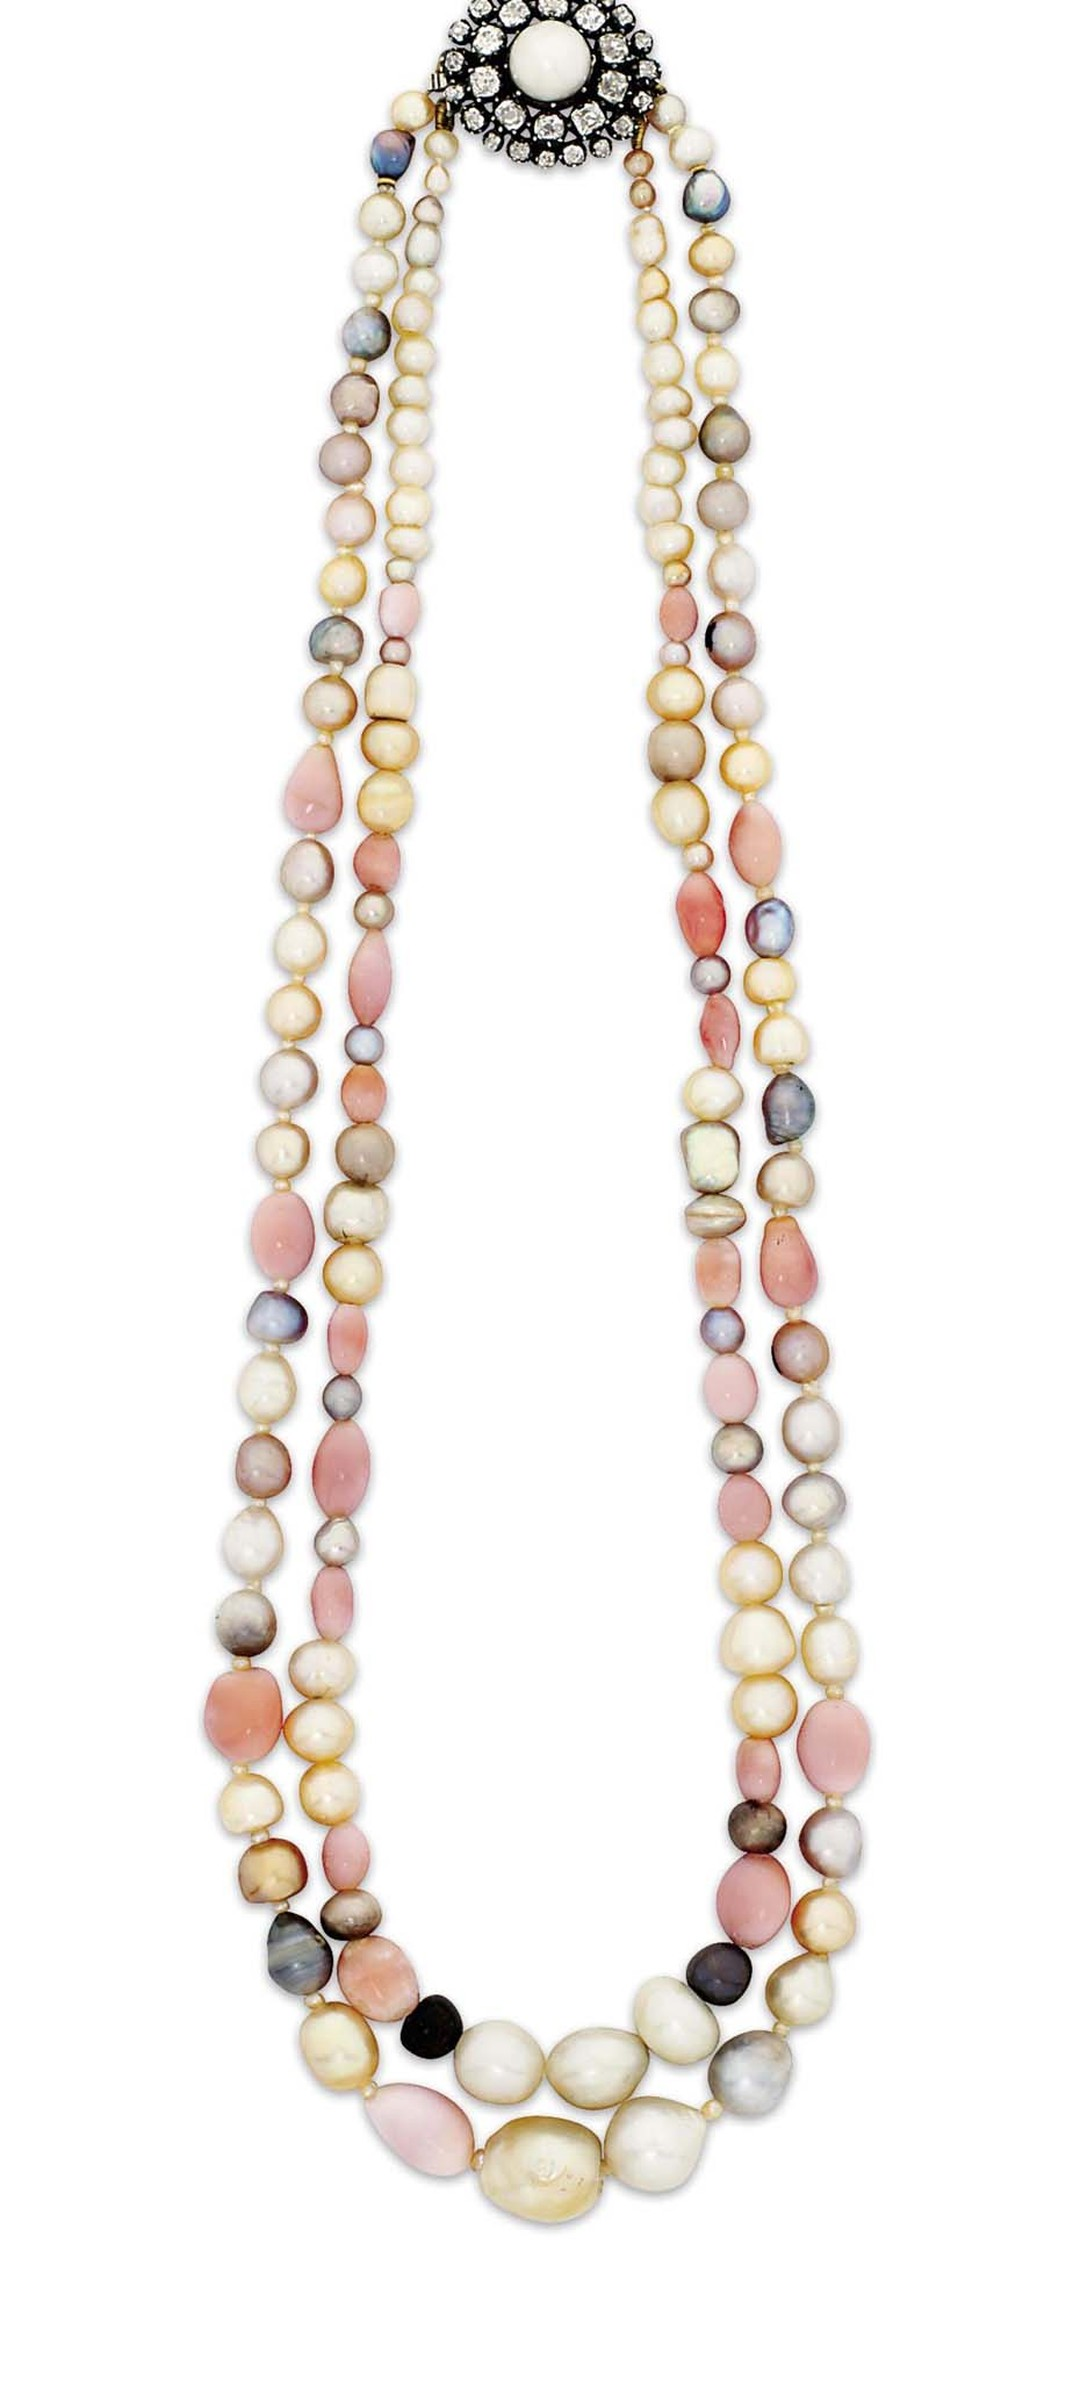 A late 19th century natural pearl and conch pearl necklace sold for £11,875 at Christie's Important Jewels sale in London last autumn.